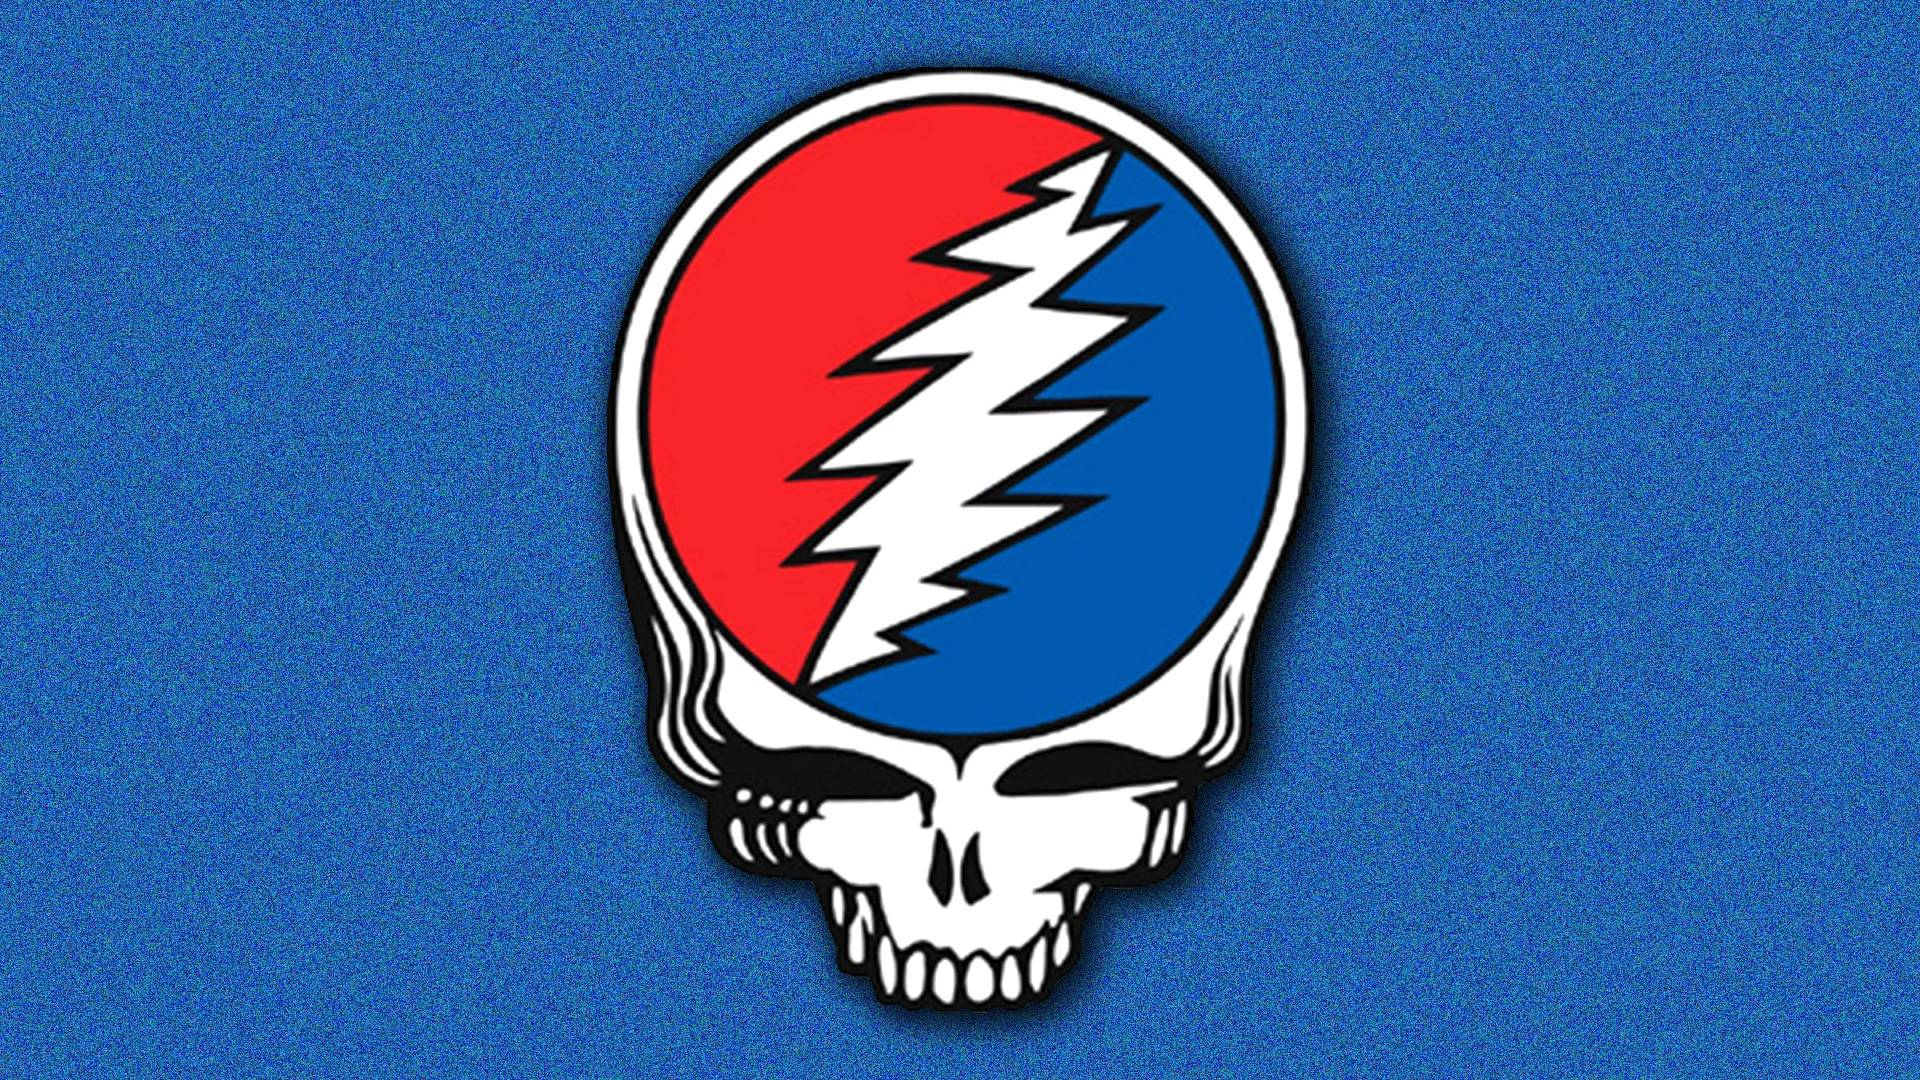 Grateful Dead wallpapers 120703